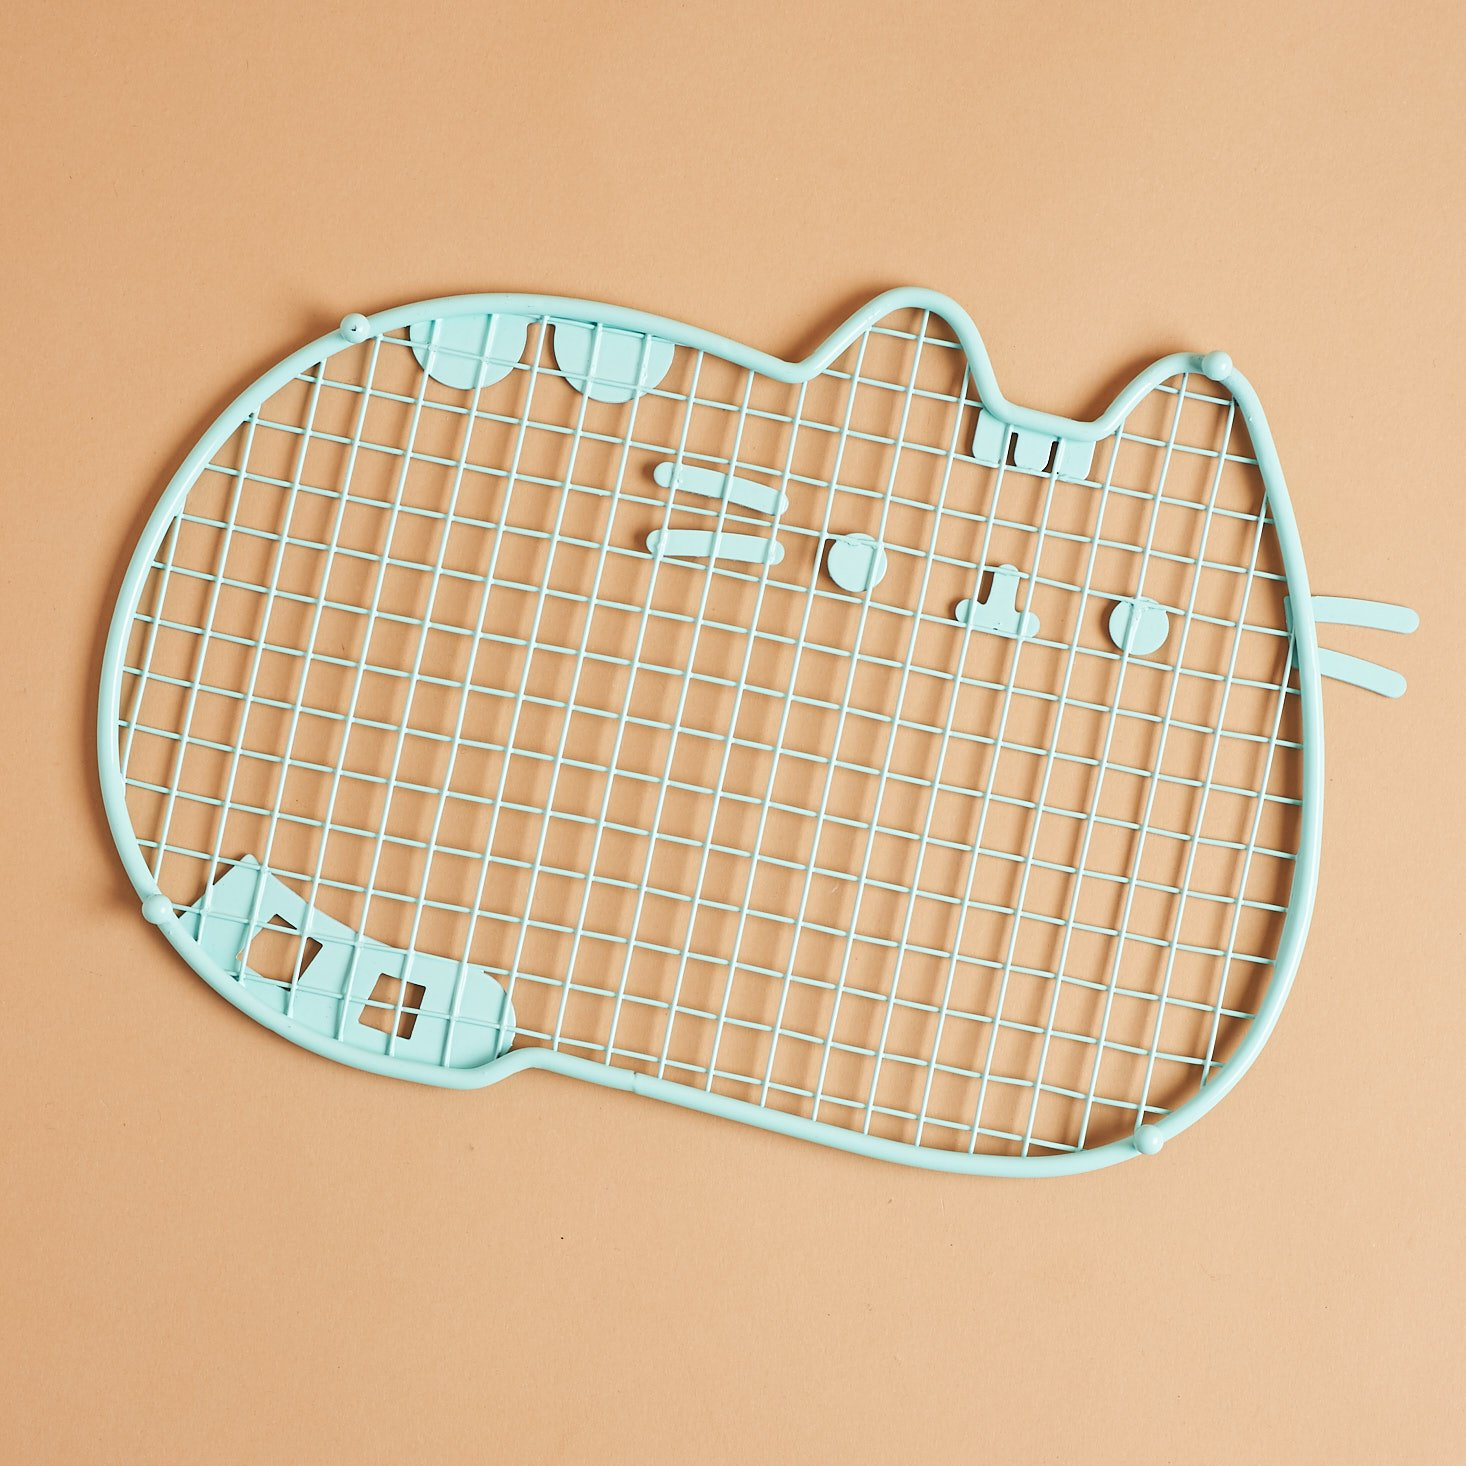 bottom of Pusheen Cooling Rack